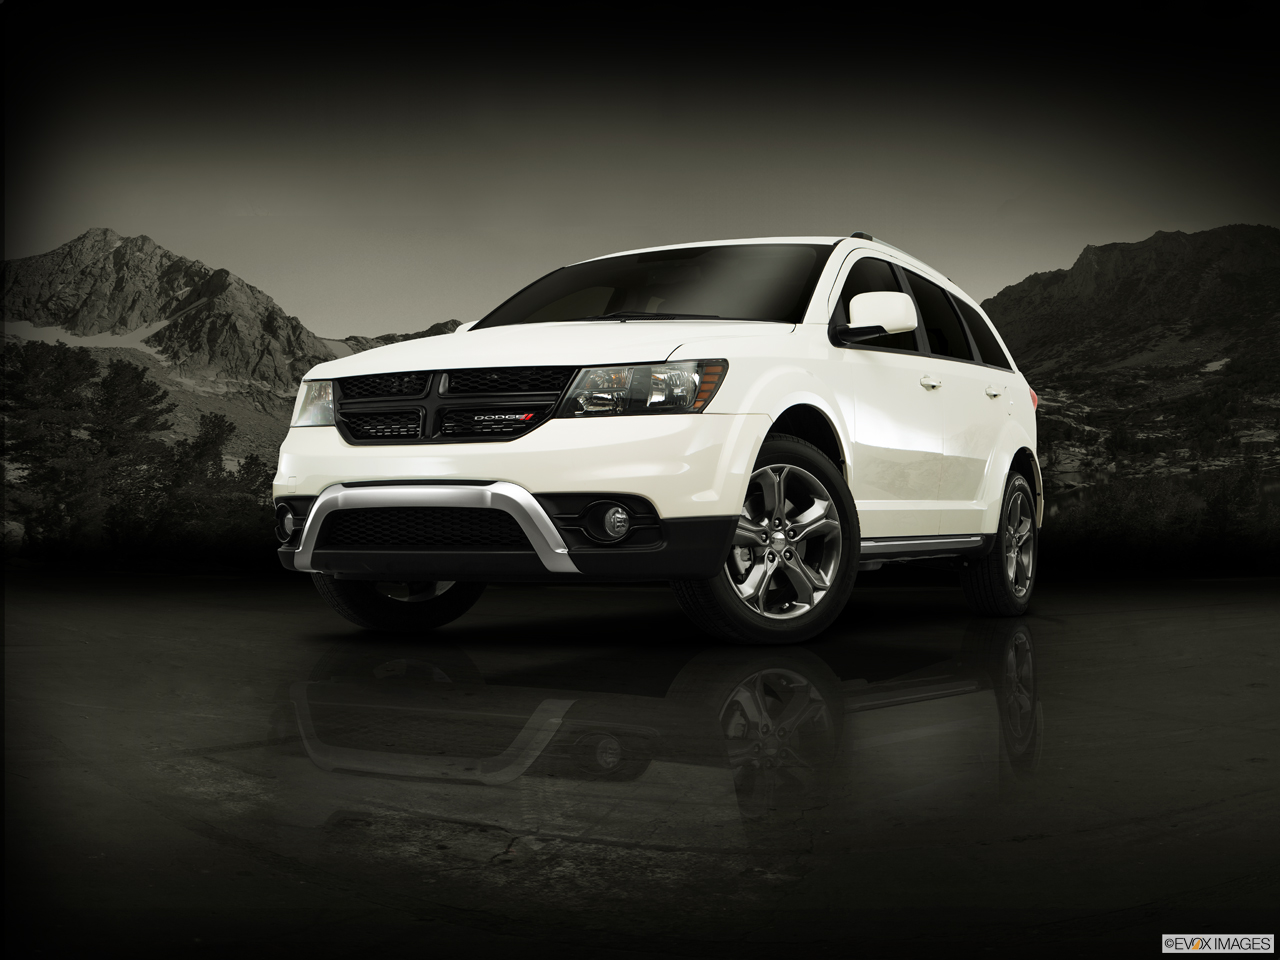 2016 dodge journey treasure coast arrigo ft pierce. Cars Review. Best American Auto & Cars Review